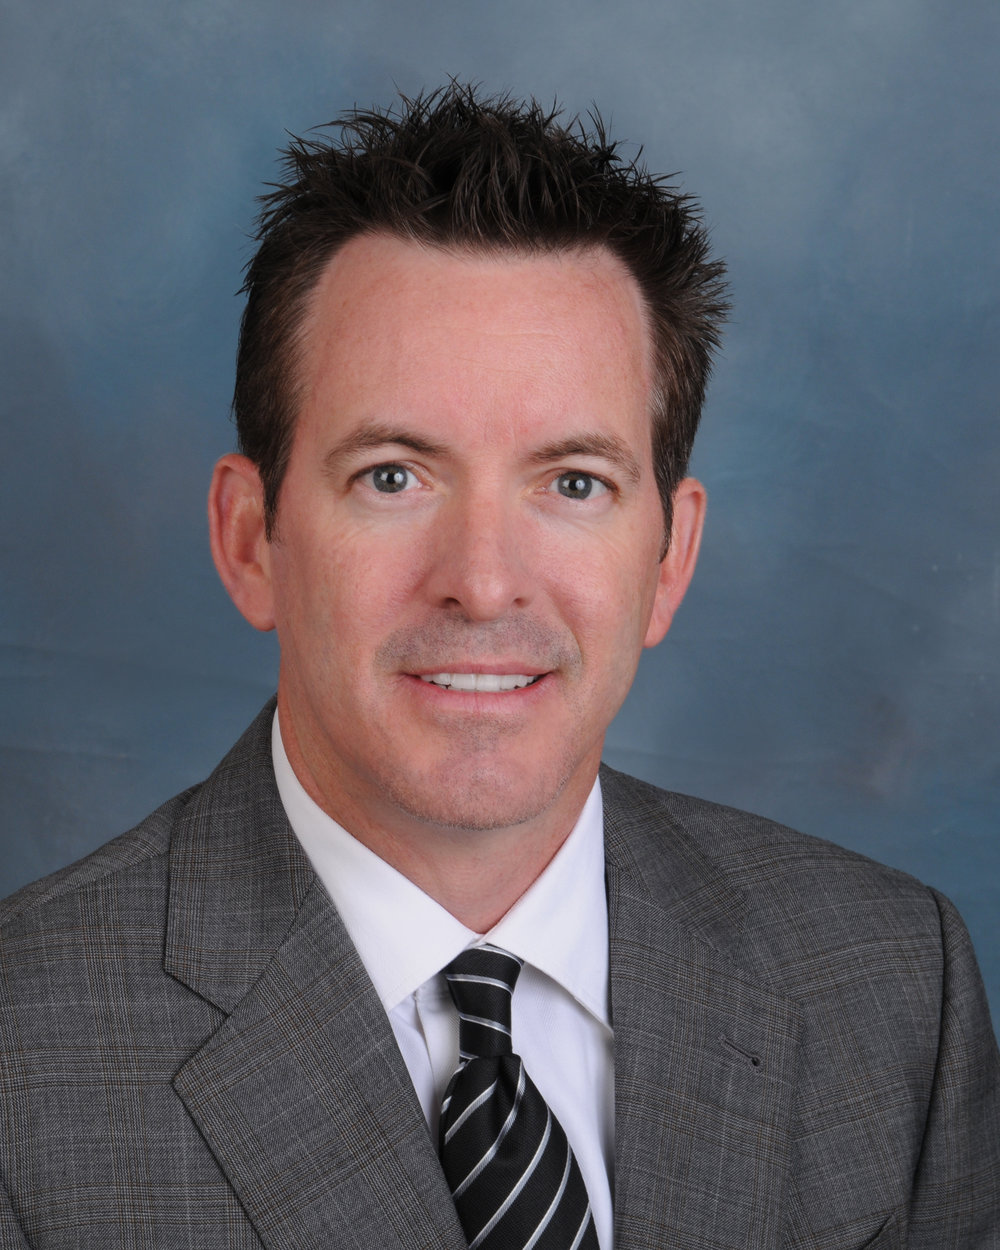 BRADLEY SMITH, PRMG IRVINE BRANCH MANAGER